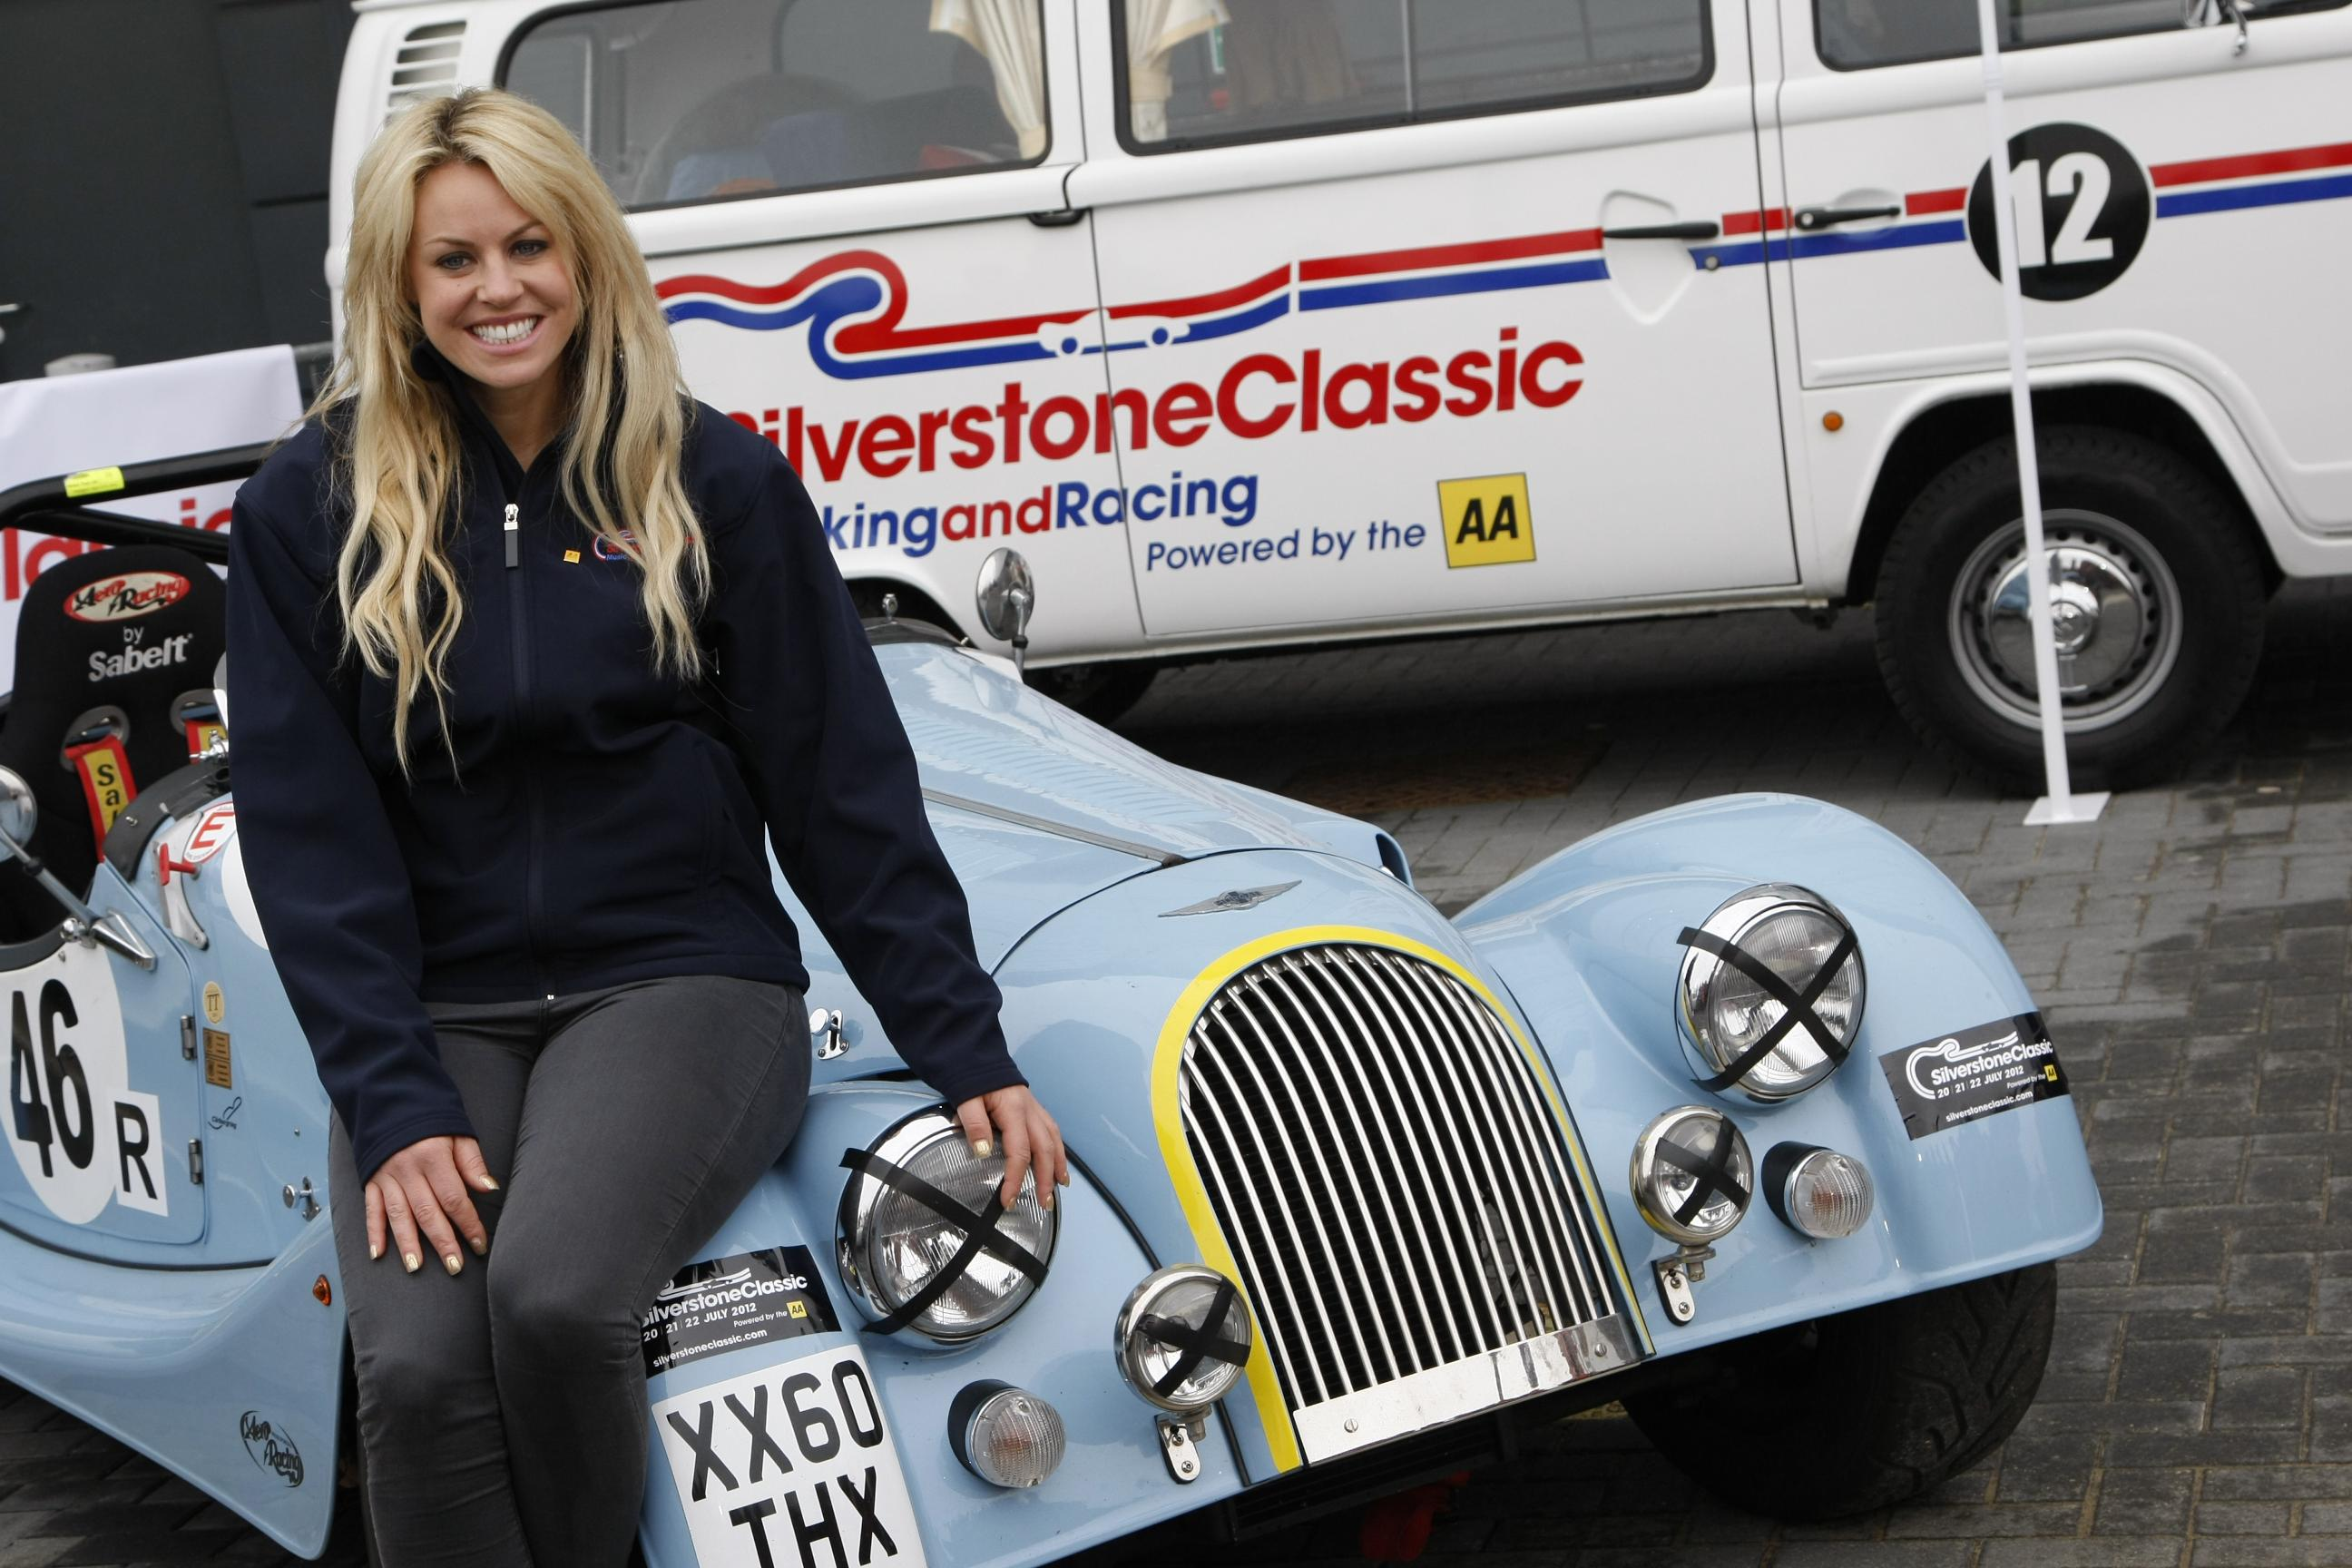 Chemmy Alcott skier turned racer